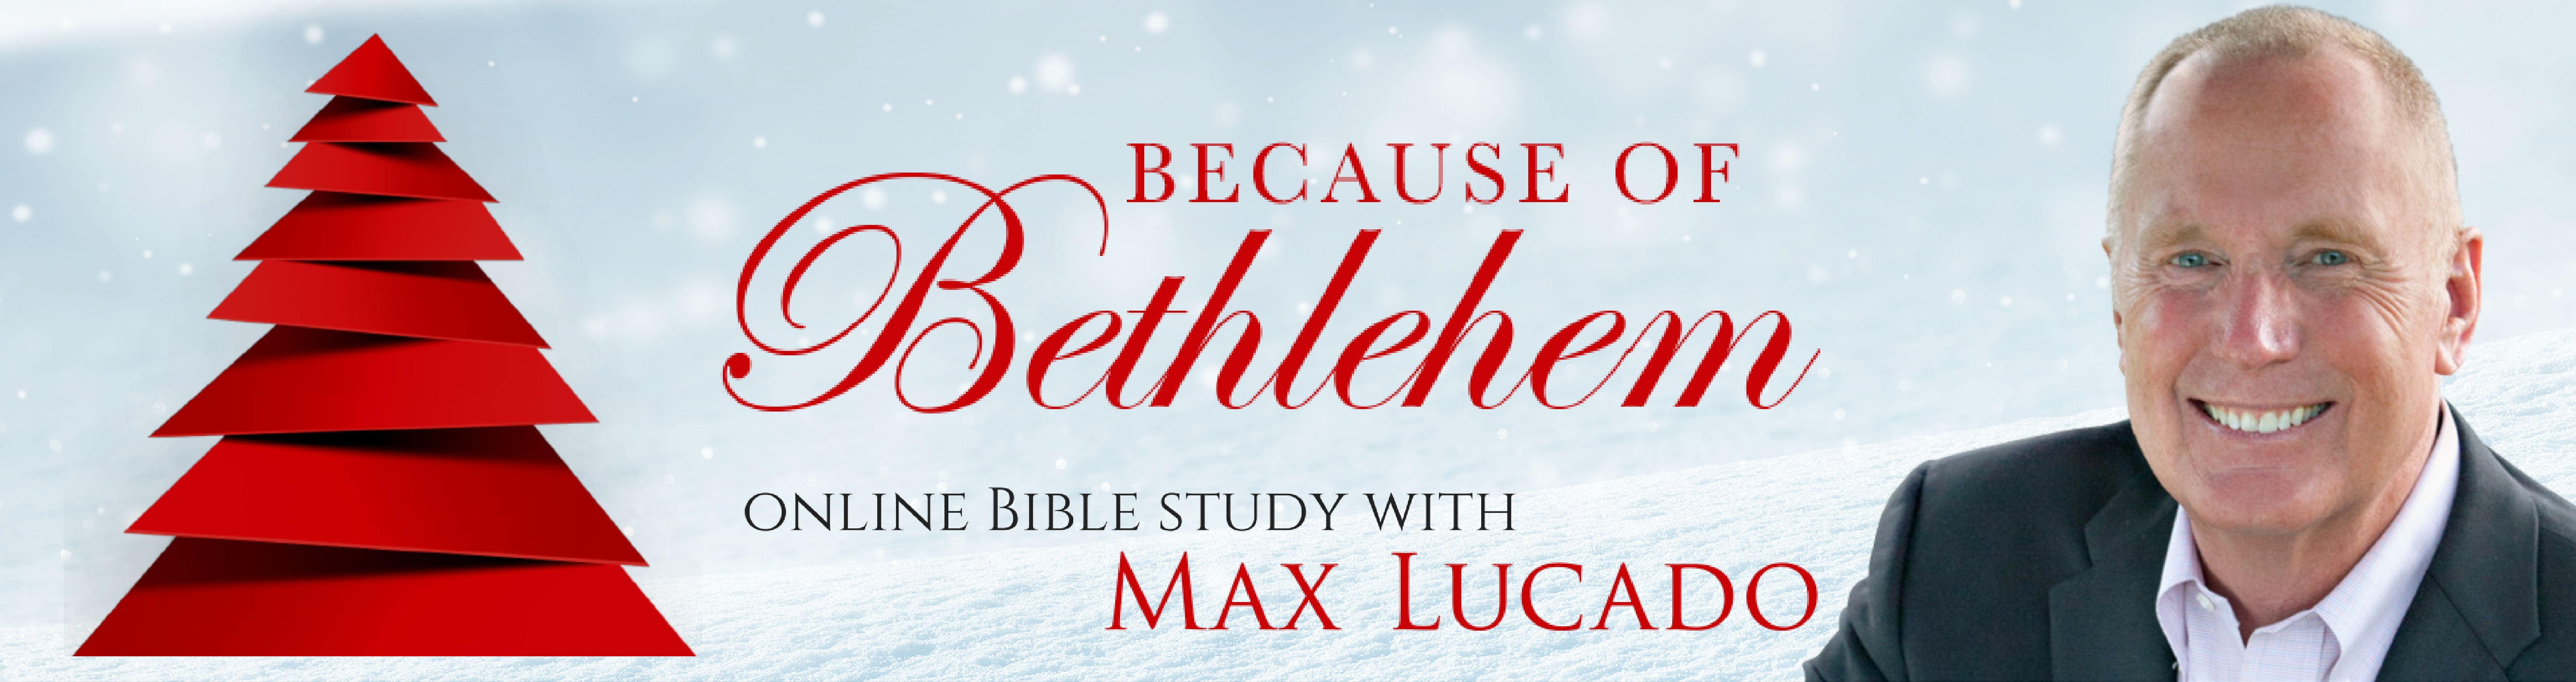 join the because of bethlehem online bible study with max lucado